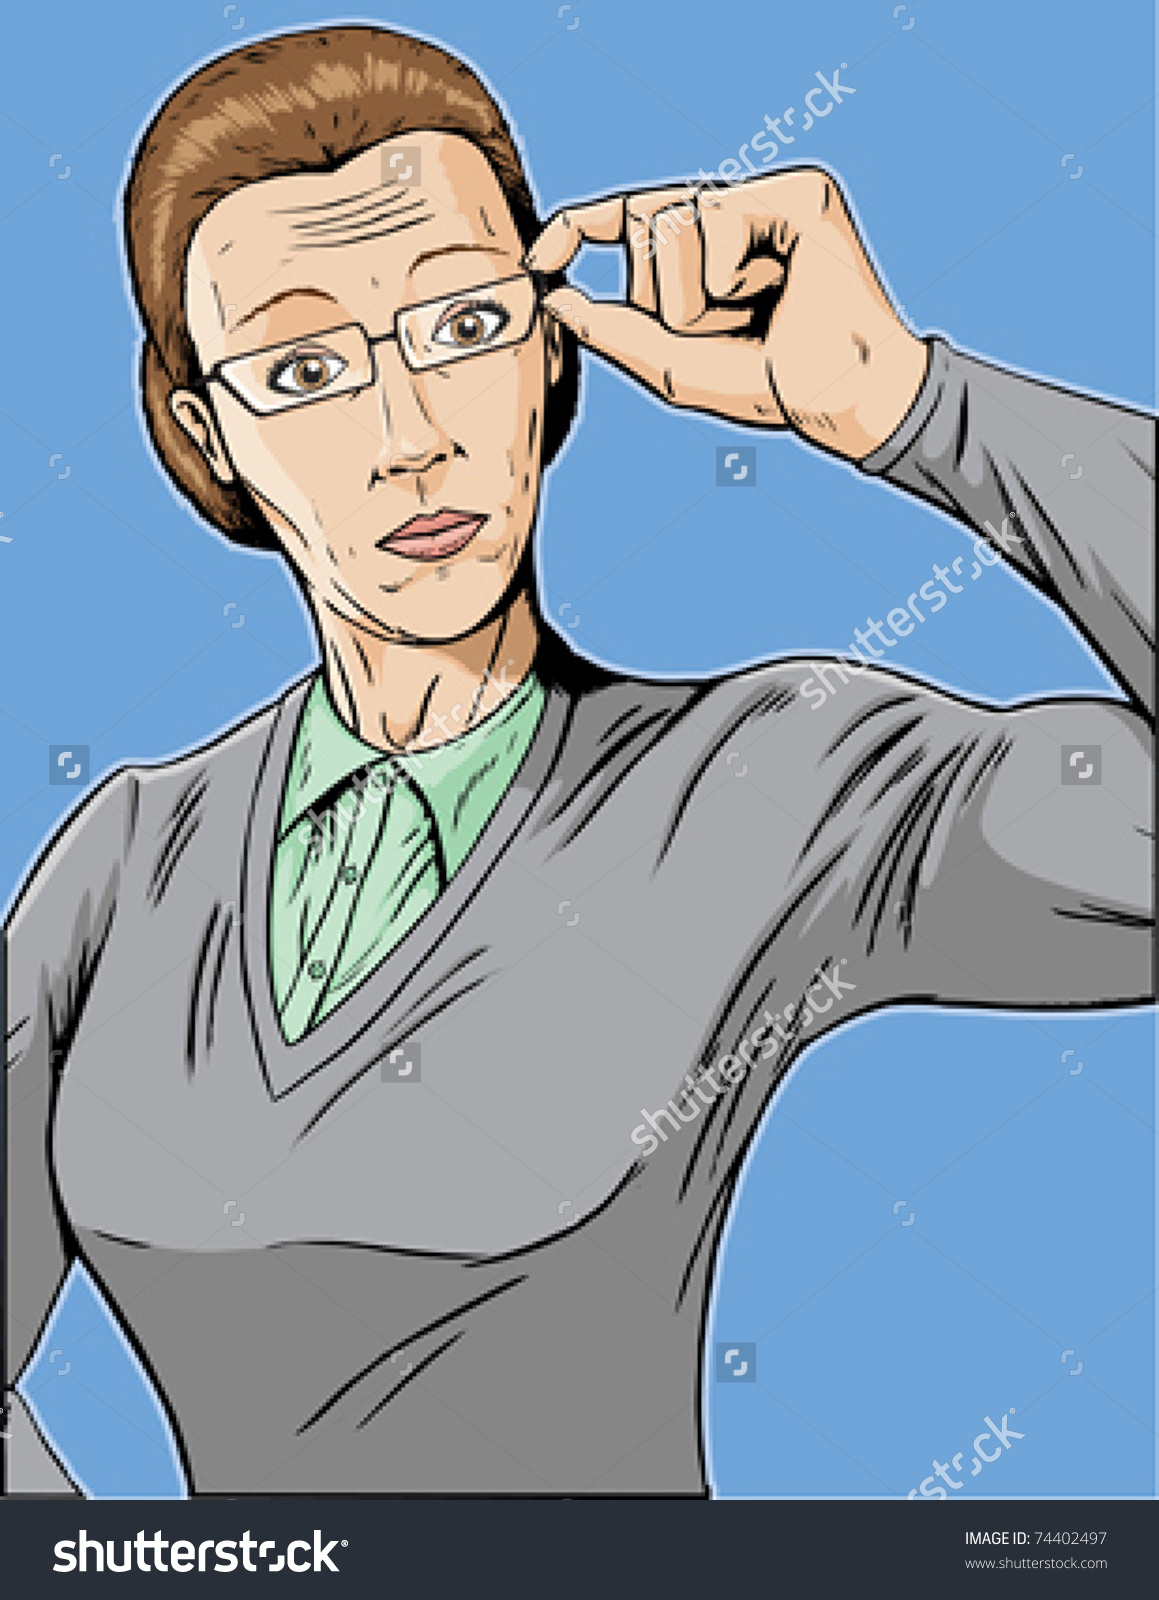 Stern Librarian, Adjusting Her Glasses. Stock Vector Illustration.